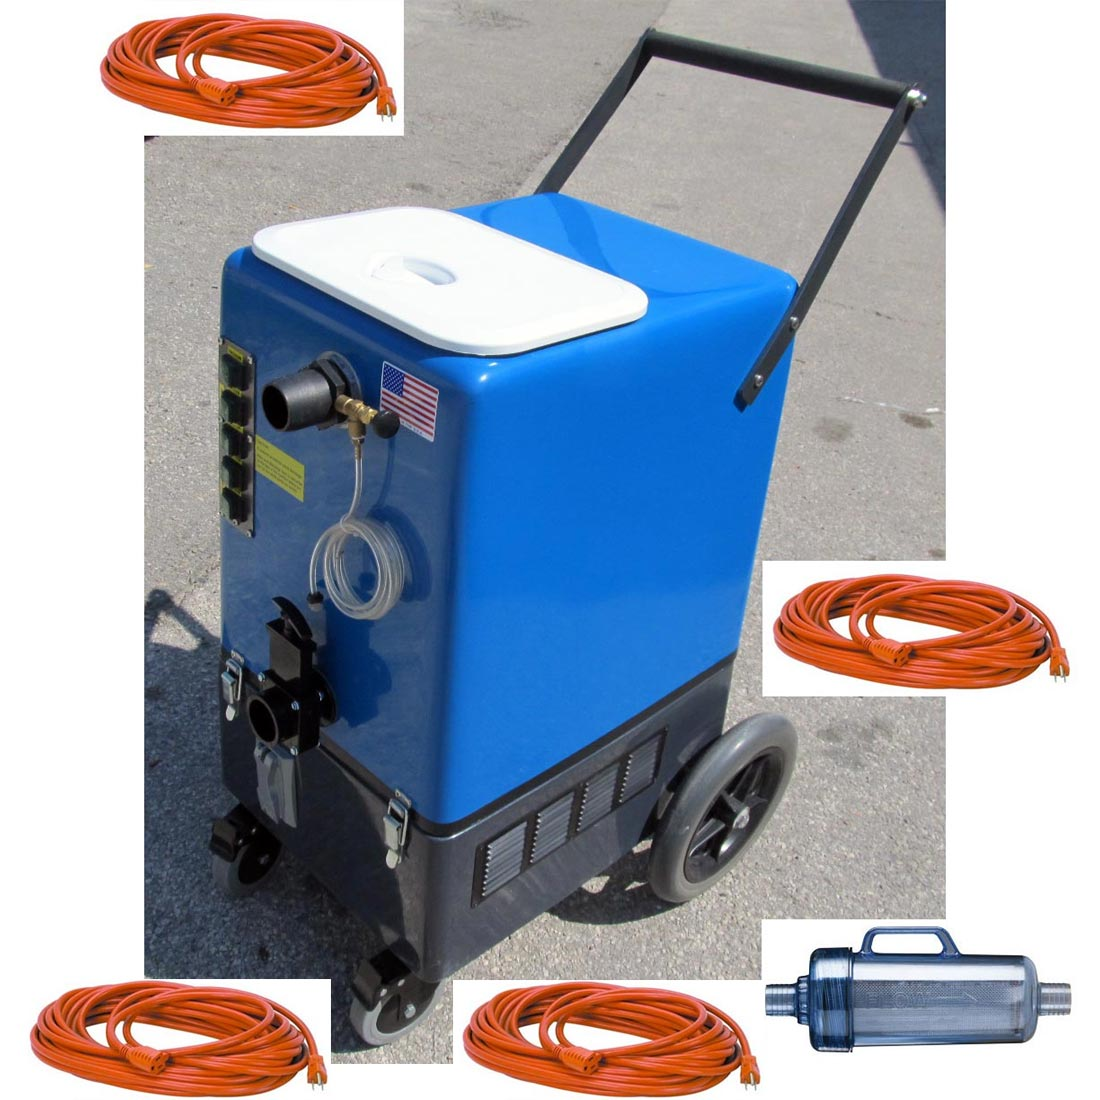 -DriStorm SBM-GO-A-6 Goliath 6.6 Flood Pumper 26gal Quad 6.6 Vacs Pressure Washer Recovery 120v with Lint Filtration